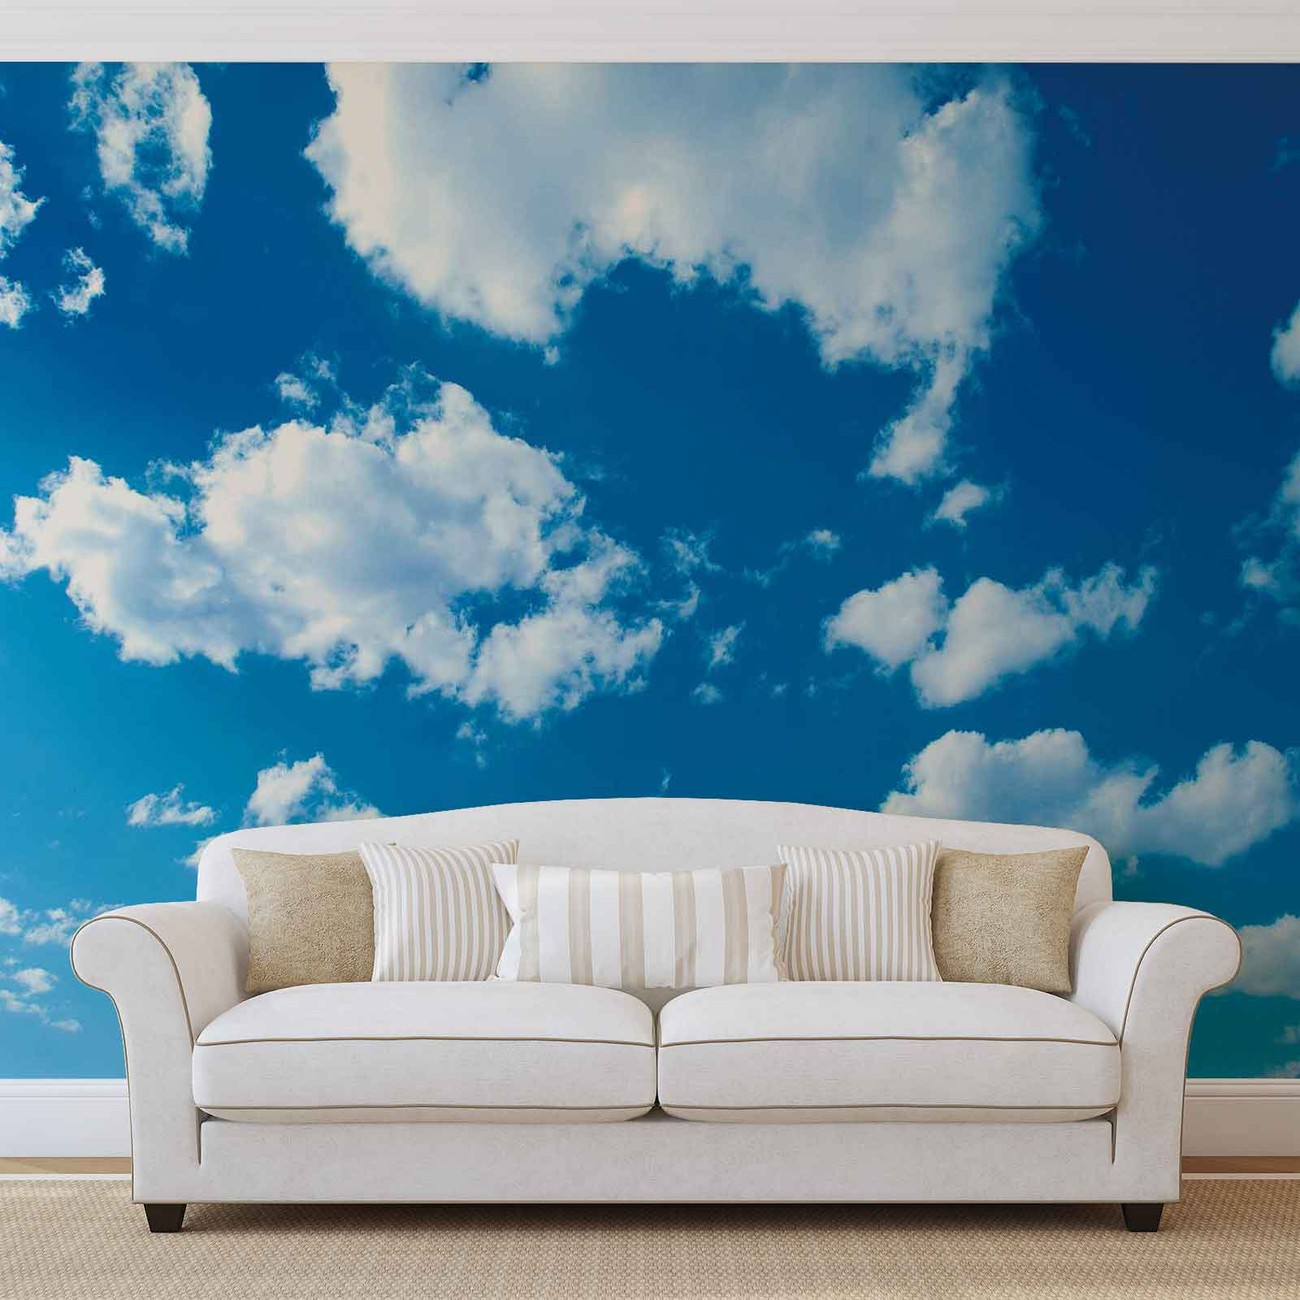 Clouds sky nature wall paper mural buy at europosters for Clouds wall mural